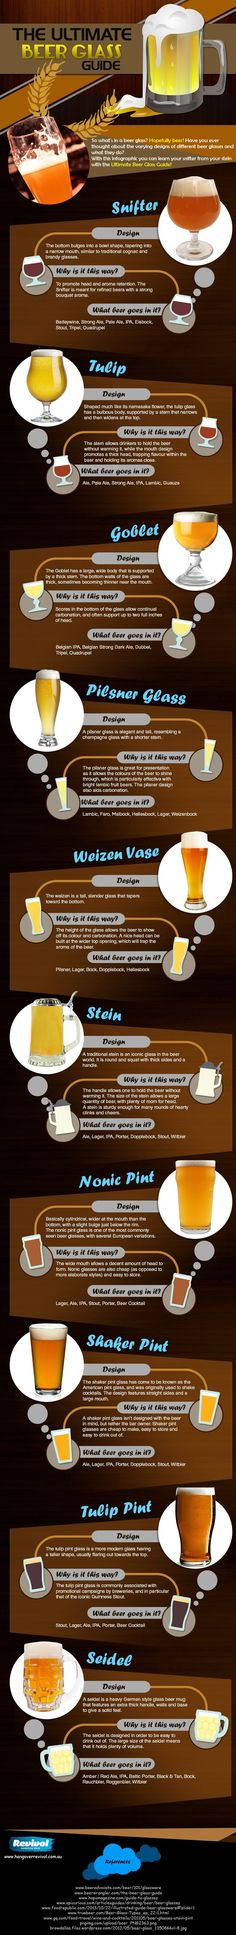 The Ultimate Beer Glass Guide #infographic #Beer #Food